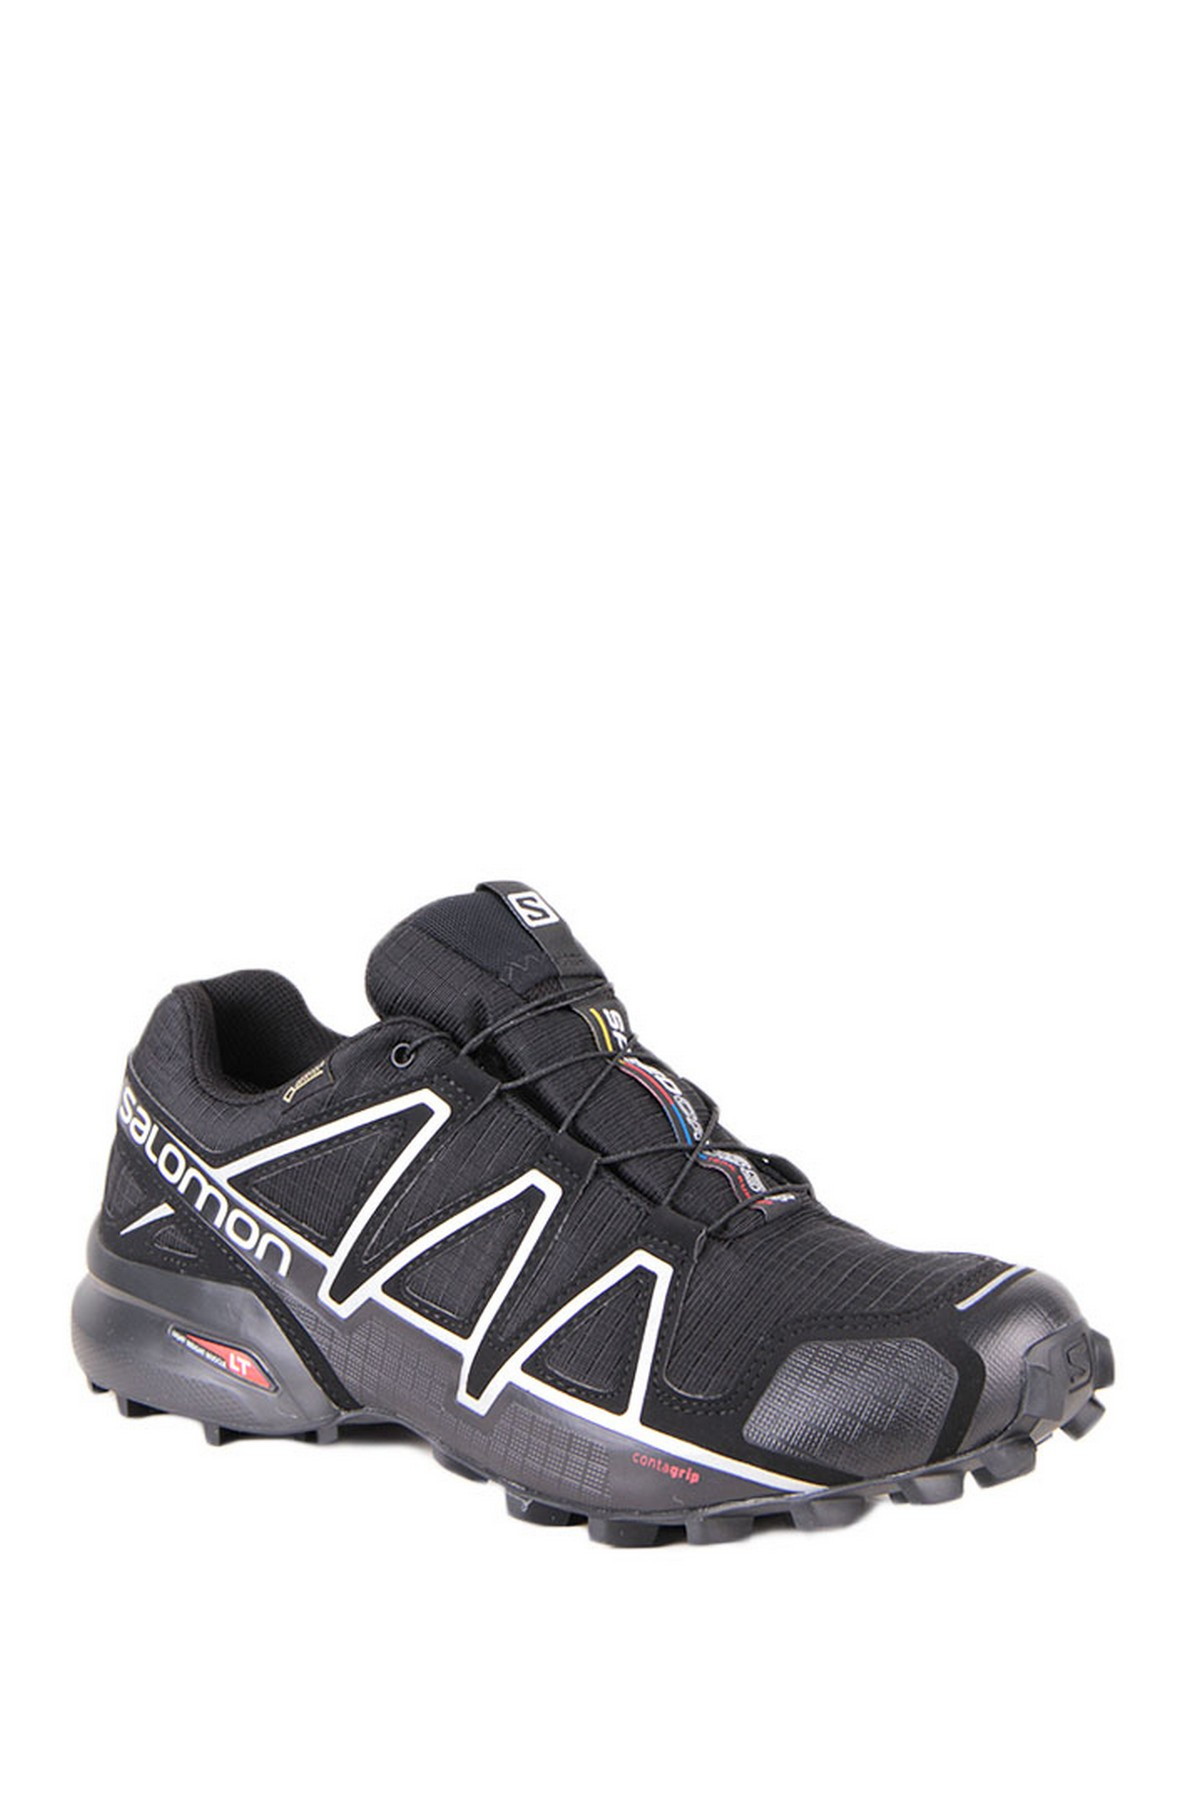 Salomon Speed Cross 4 GTX Outdoor Ayakkabı Erkek (L38318100)